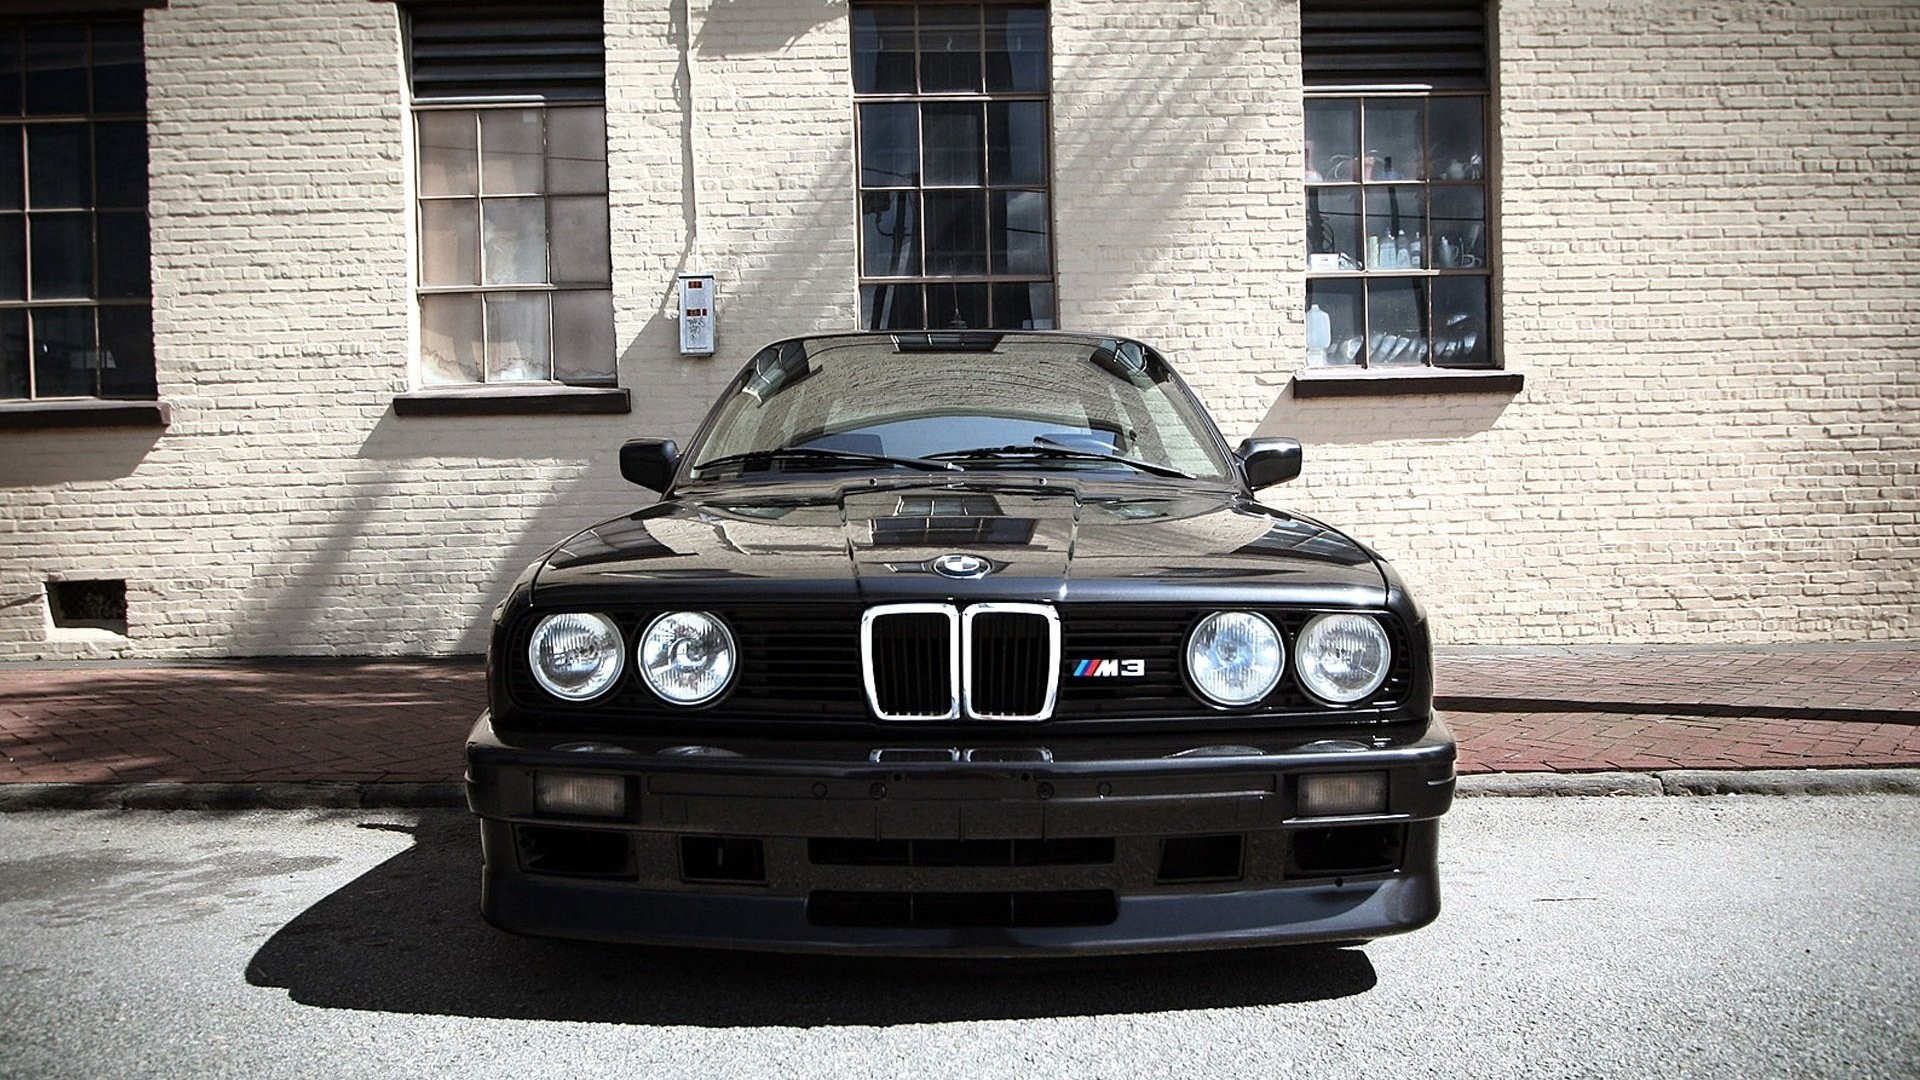 Res: 1920x1080, 0 720x479 Bmw E30 wallpaper by lizziebennet19 RevelWallpapers.n   Bmw M3 E30 521996 | WallDev